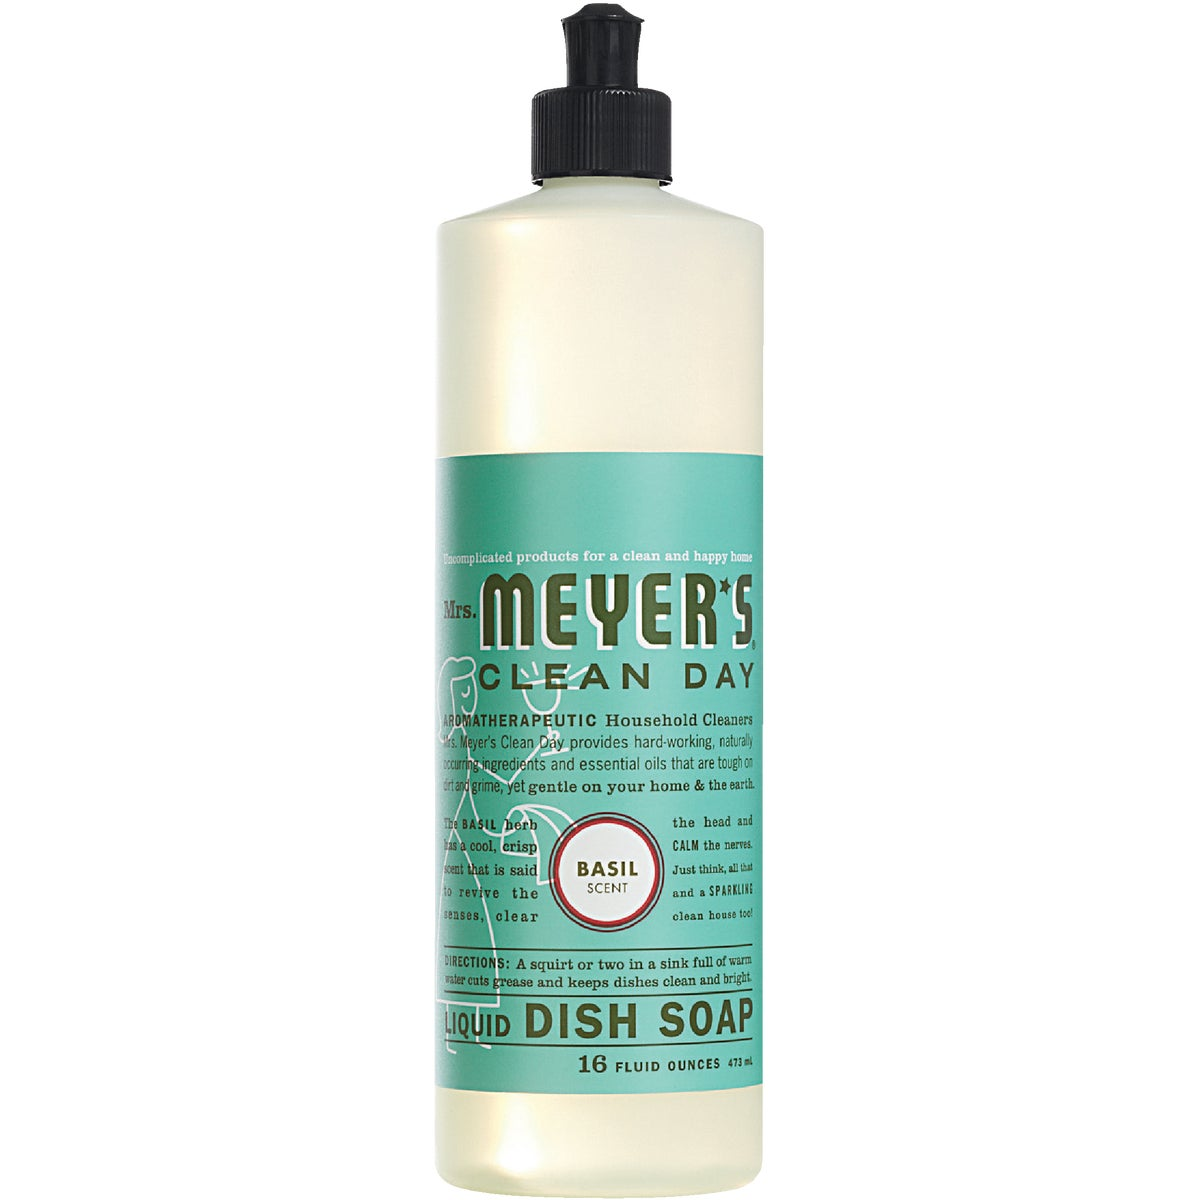 Mrs. Meyer's Clean Day Liquid Dish Soap